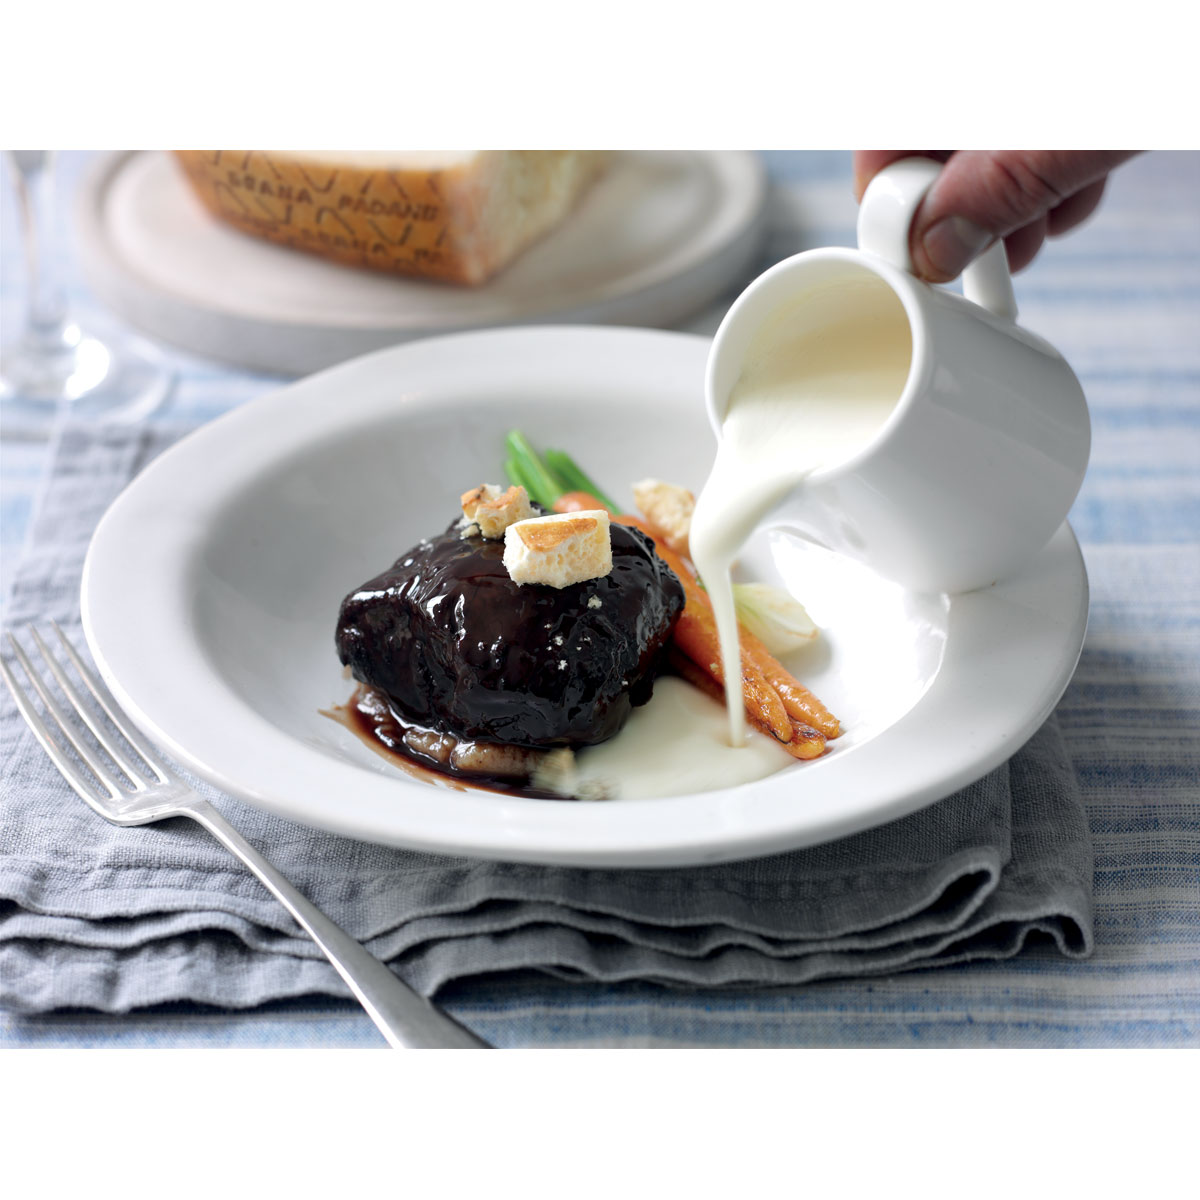 Braised beef cheeks with Grana Padano fondue